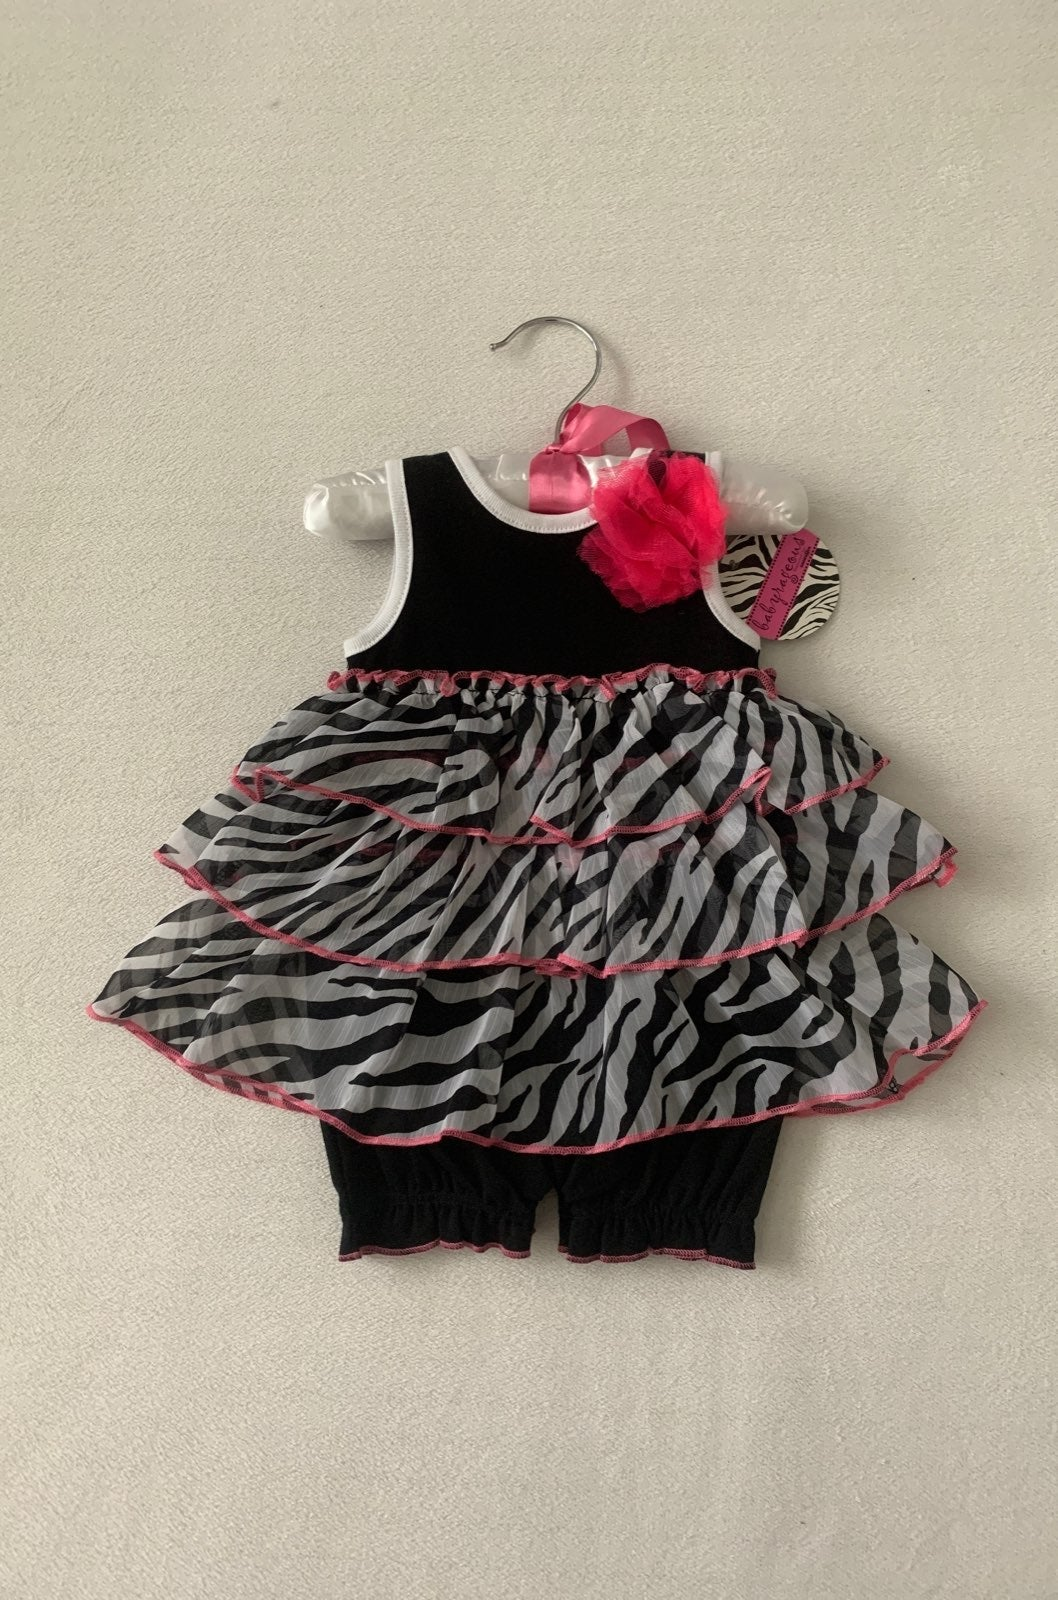 Babyrageous 1PC Outfit, Size: 6 Months